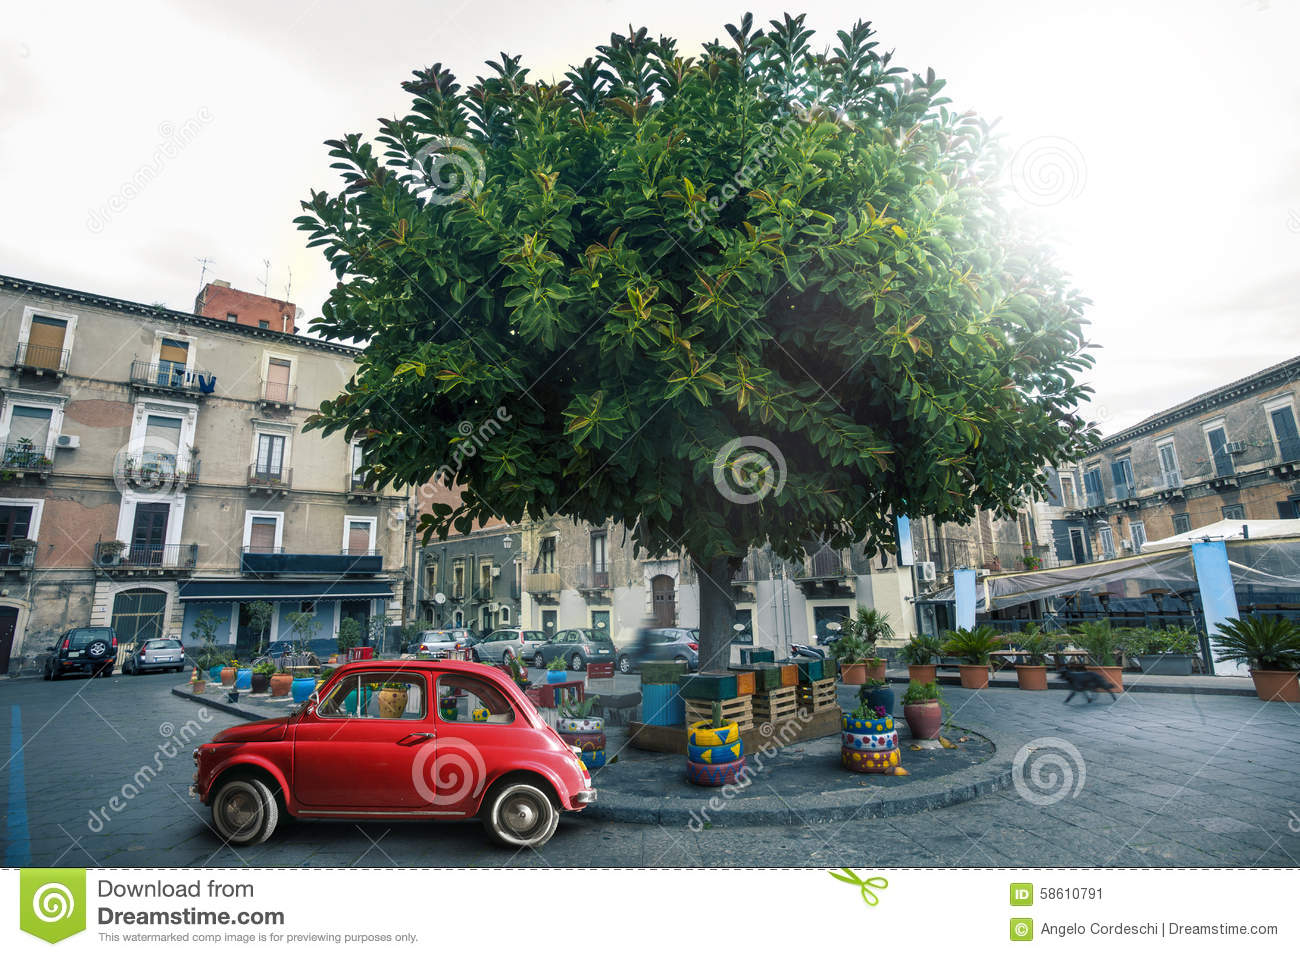 Stock Photo Italian Old Red Car Parked Near Tree Square City Catania Italy Small Sub pact Nobody Inside Image58610791 also Gucci Logo Wallpaper as well Royalty Free Stock Photography Seventies Image13002787 moreover Racetrack Wallpaper in addition Dude Perfect Wallpapers. on fiat 500 background